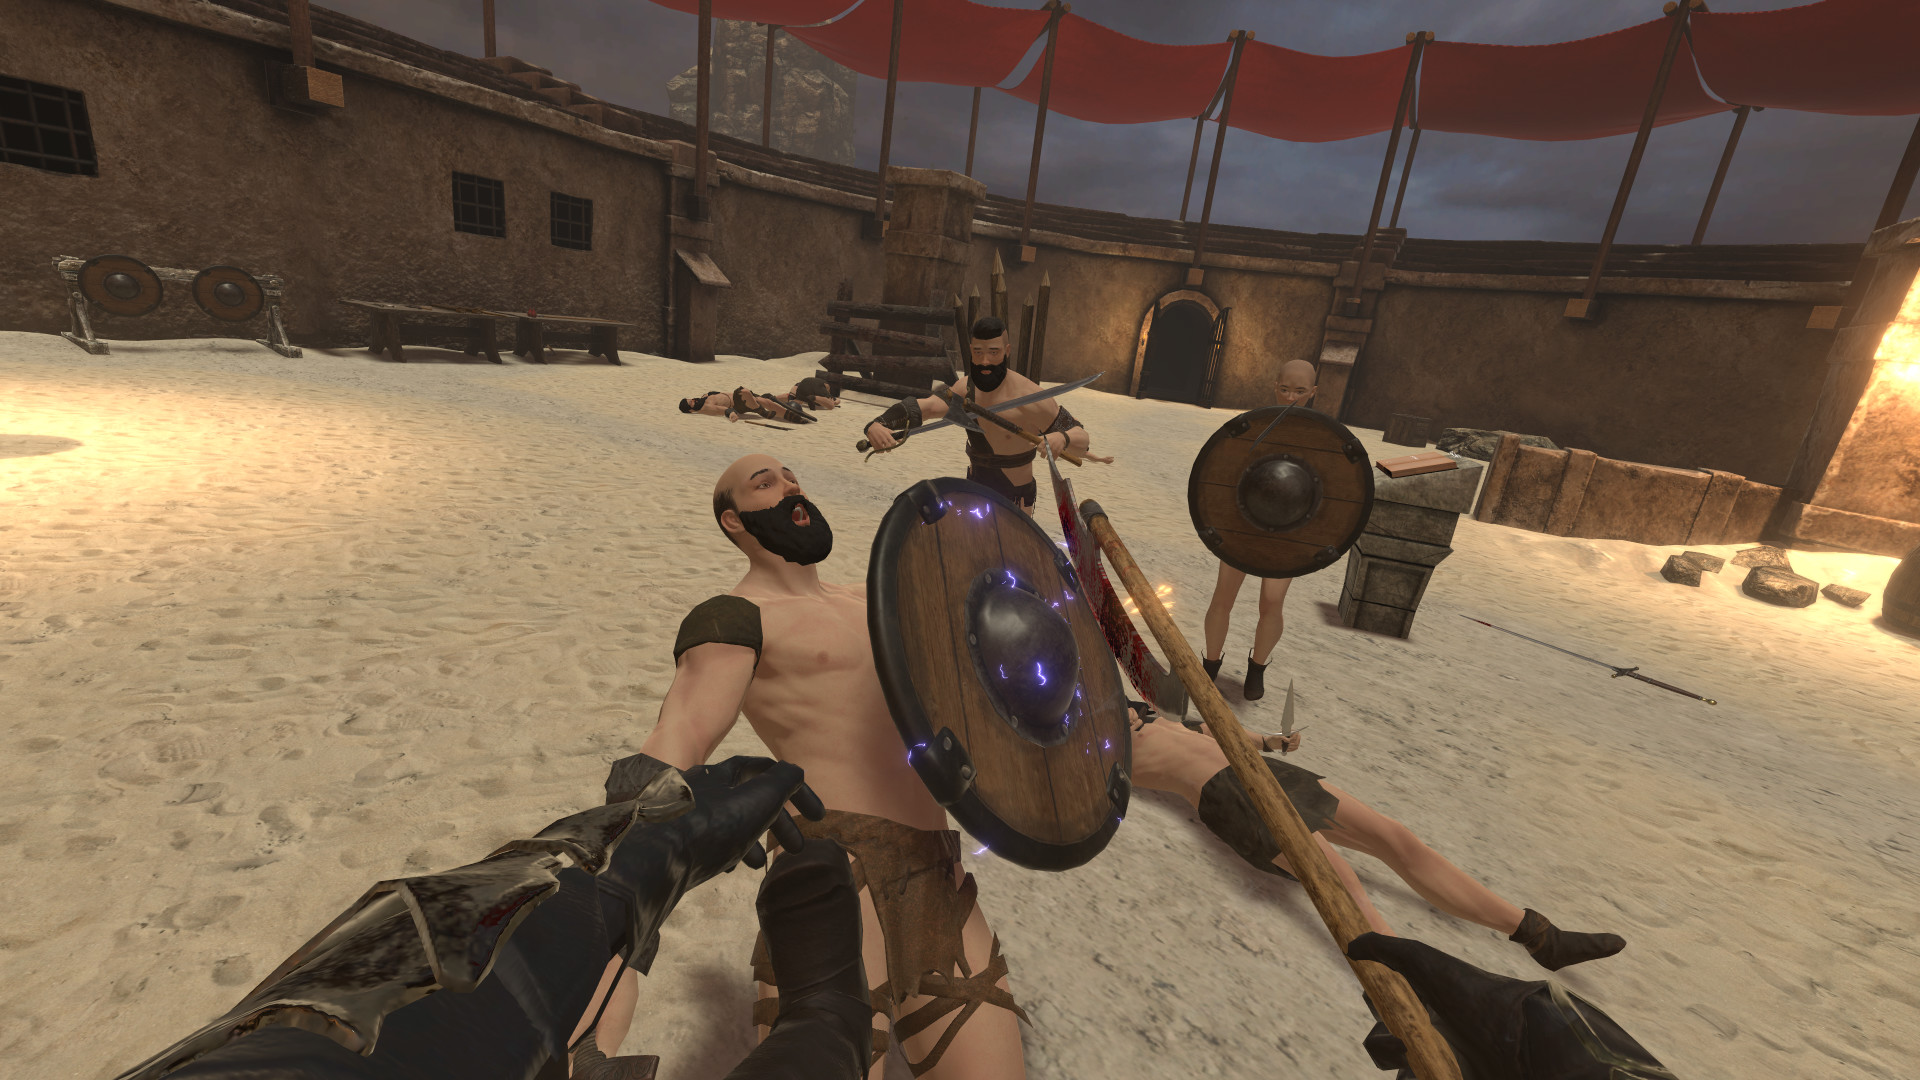 VR Combat Sandbox 'Blade & Sorcery' Heads to Early Access Tomorrow, New Trailer Here